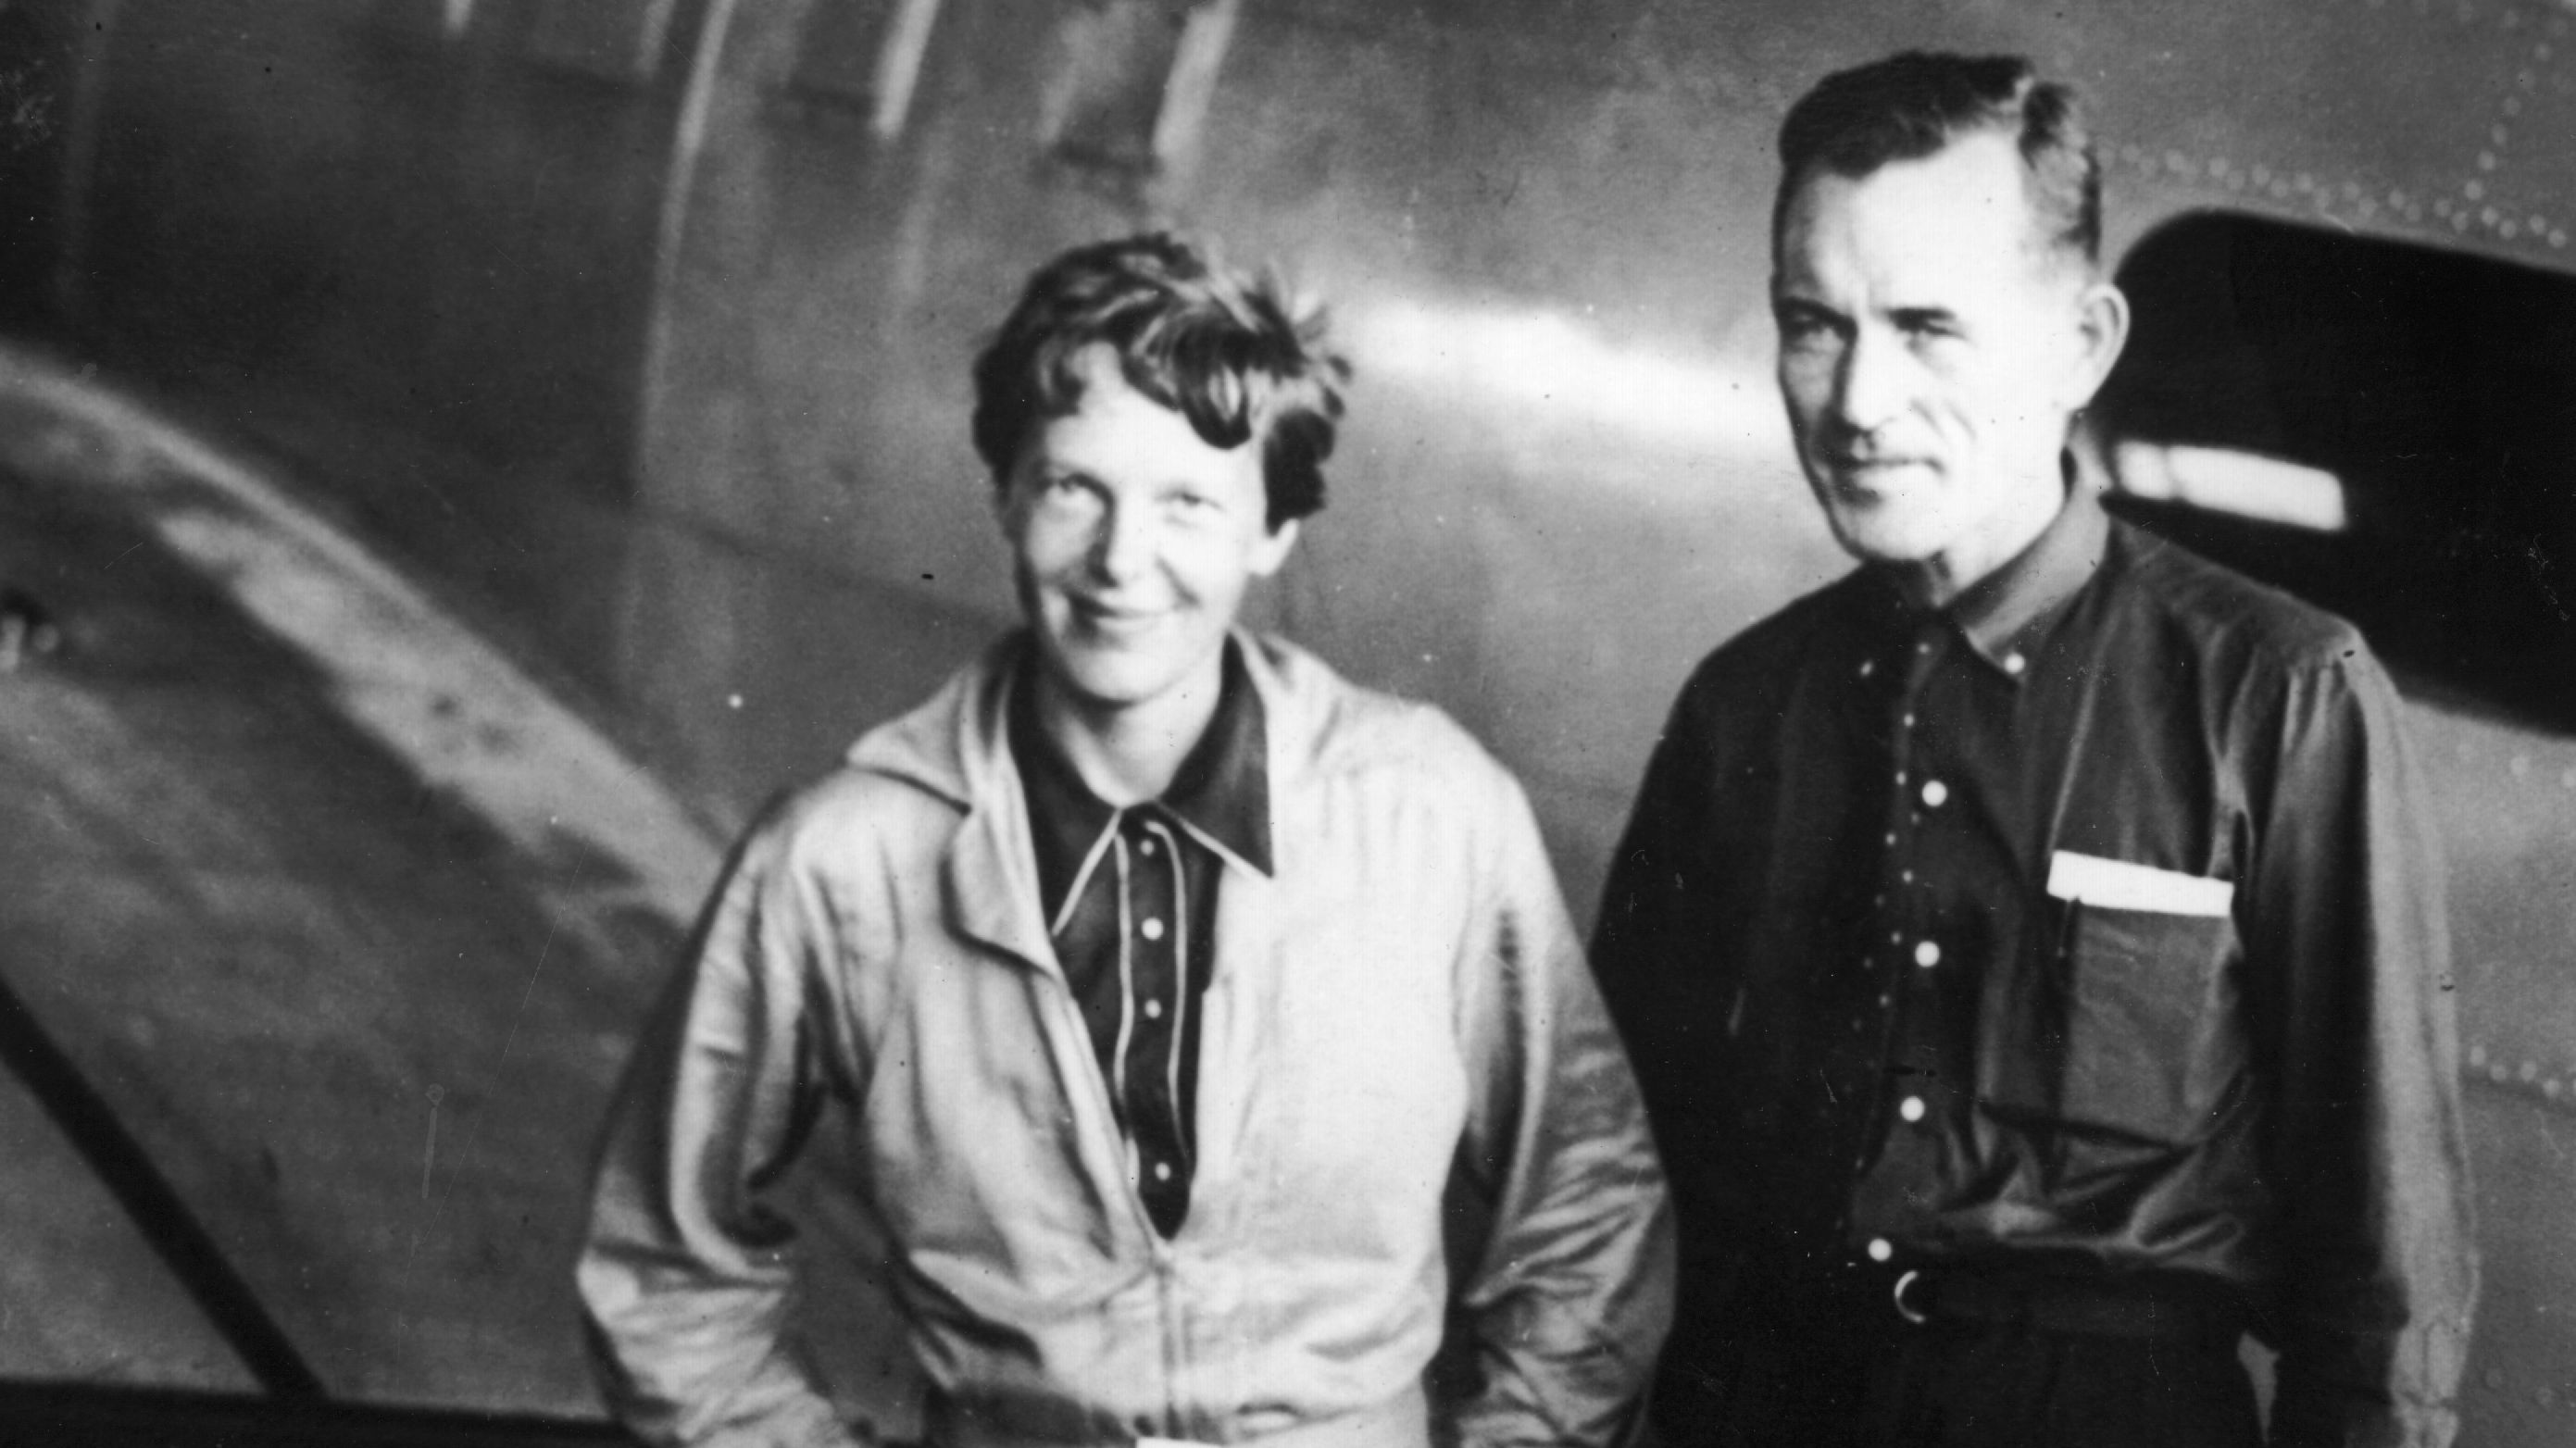 Bones found at Pacific island of Amelia Earhart, says new report